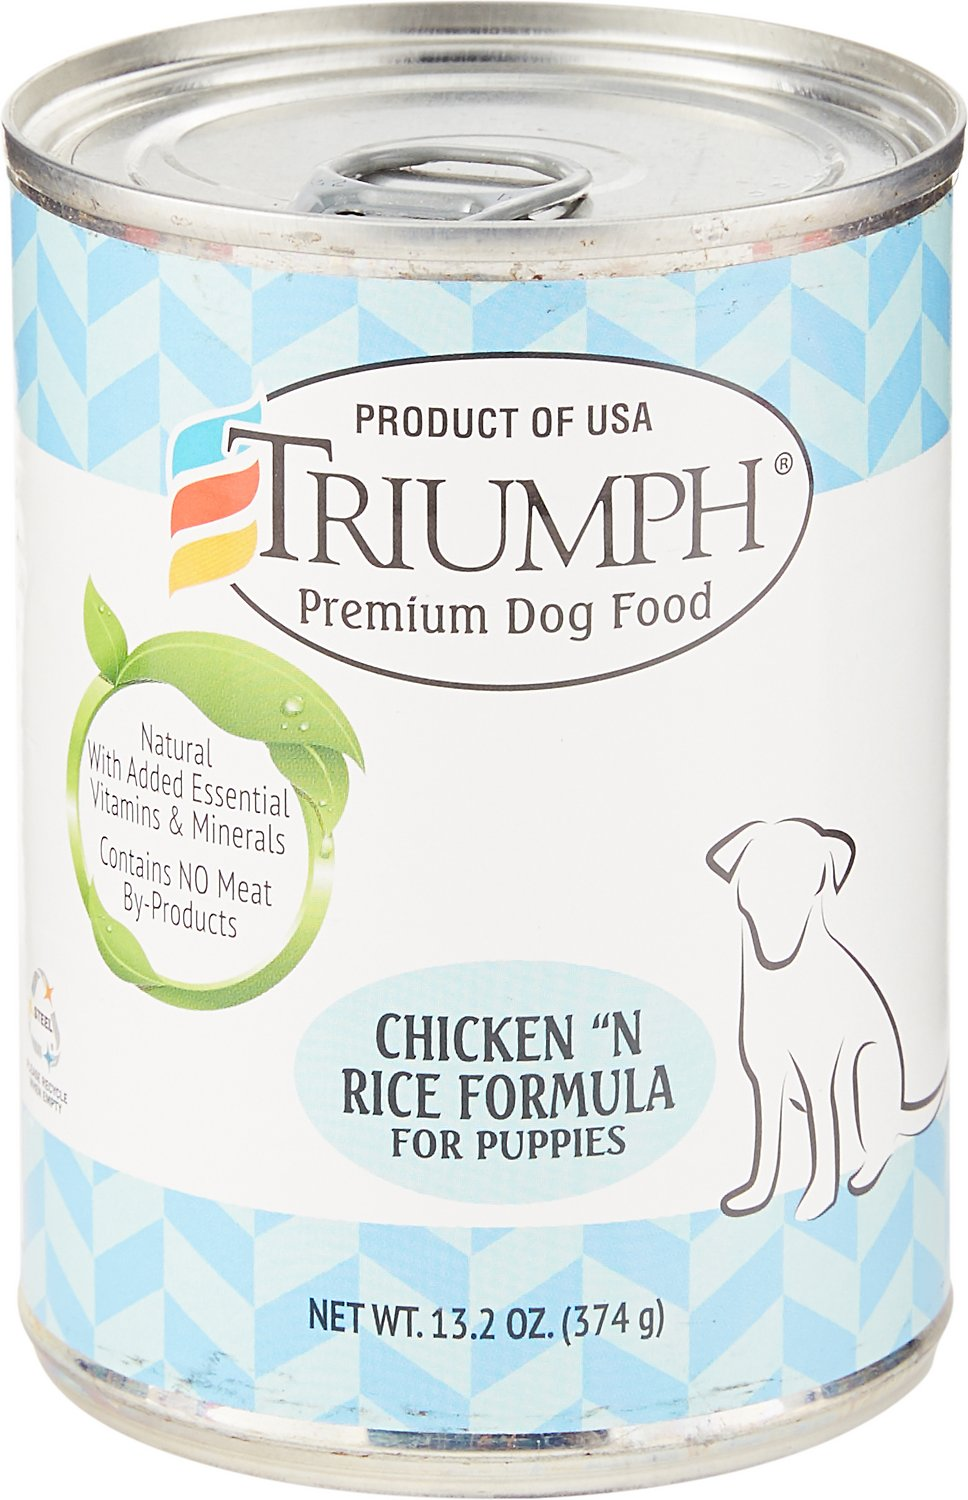 Triumph Chicken 'N Rice Formula for Puppies Canned Dog Food, 13.2-oz